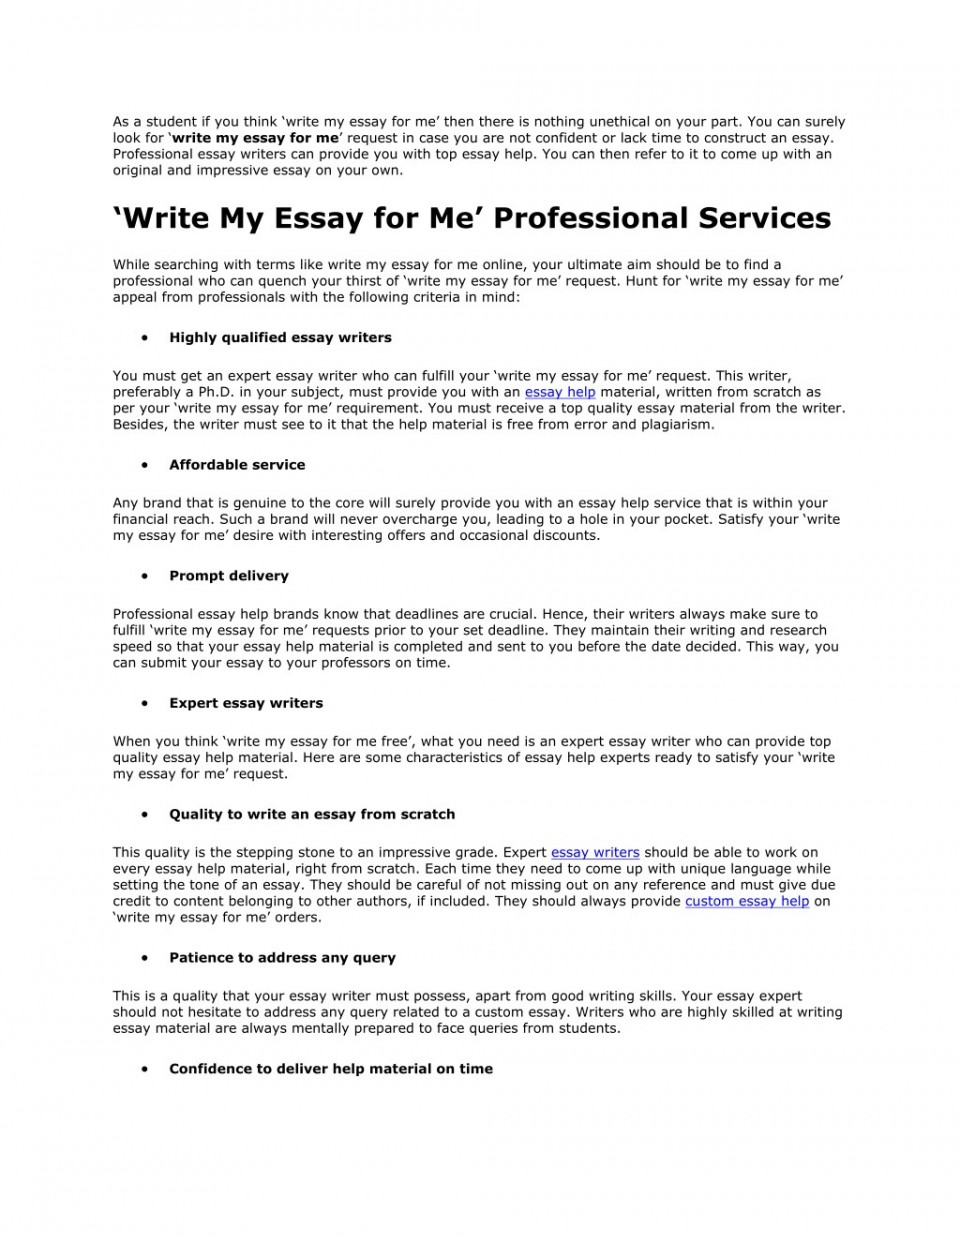 006 Essay Example Write For Me As Student If You Think My Amazing Custom Cheap Online Free 960